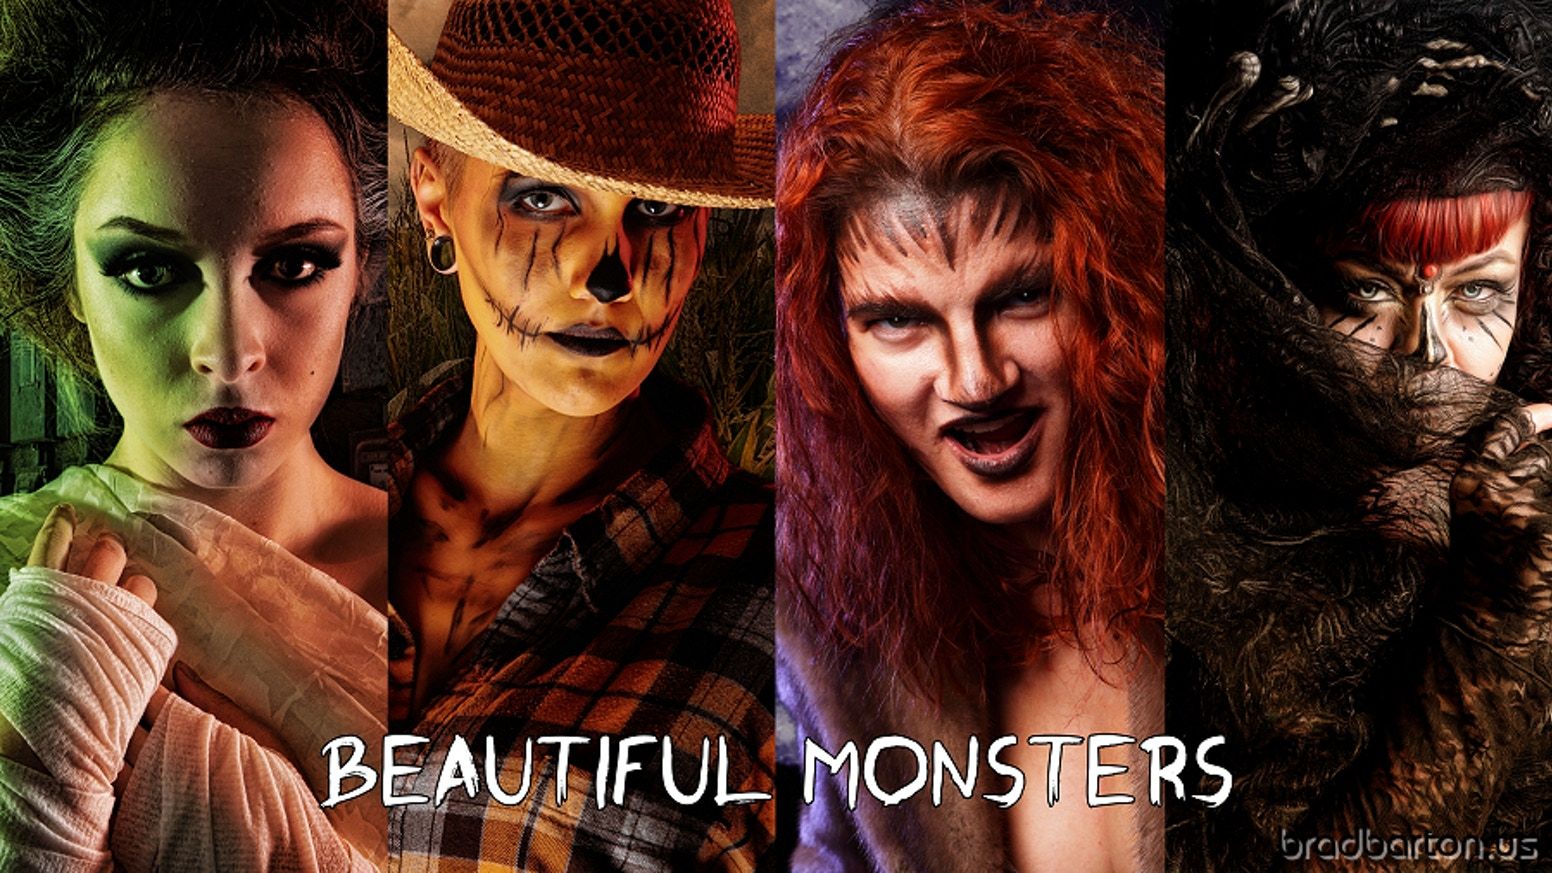 Beautiful Monsters is a full color art book filled with pinup style monsters inspired by classic literature and mythology.